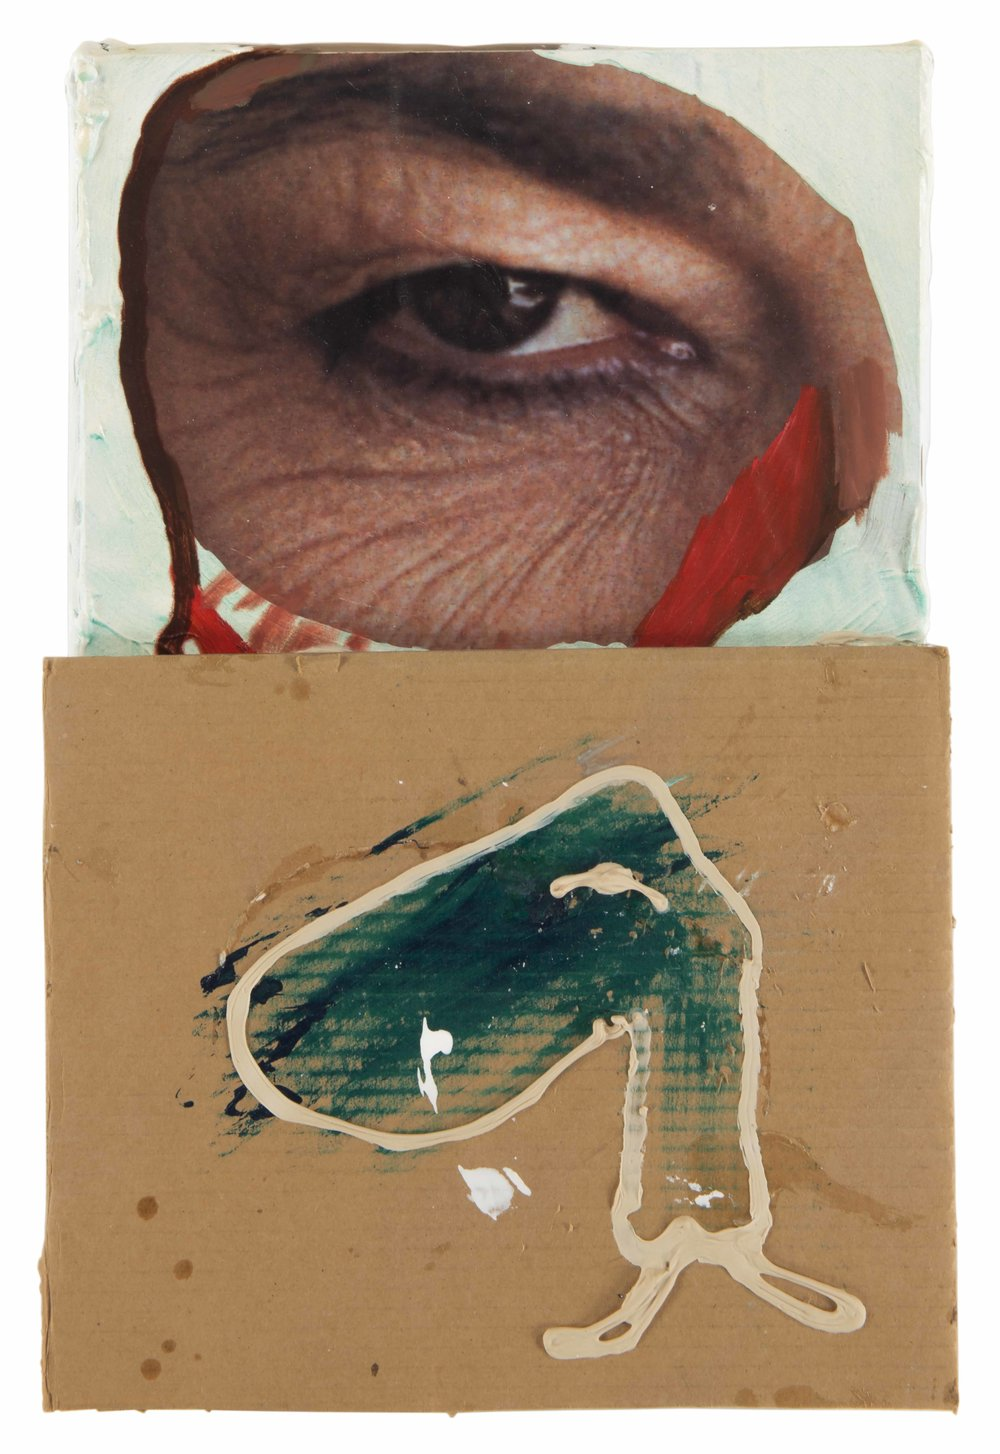 Drew Beattie  Sergeant Sergeant   2010 acrylic, liquid nails, collage and cardboard on canvas 17½ x 11¾ inches